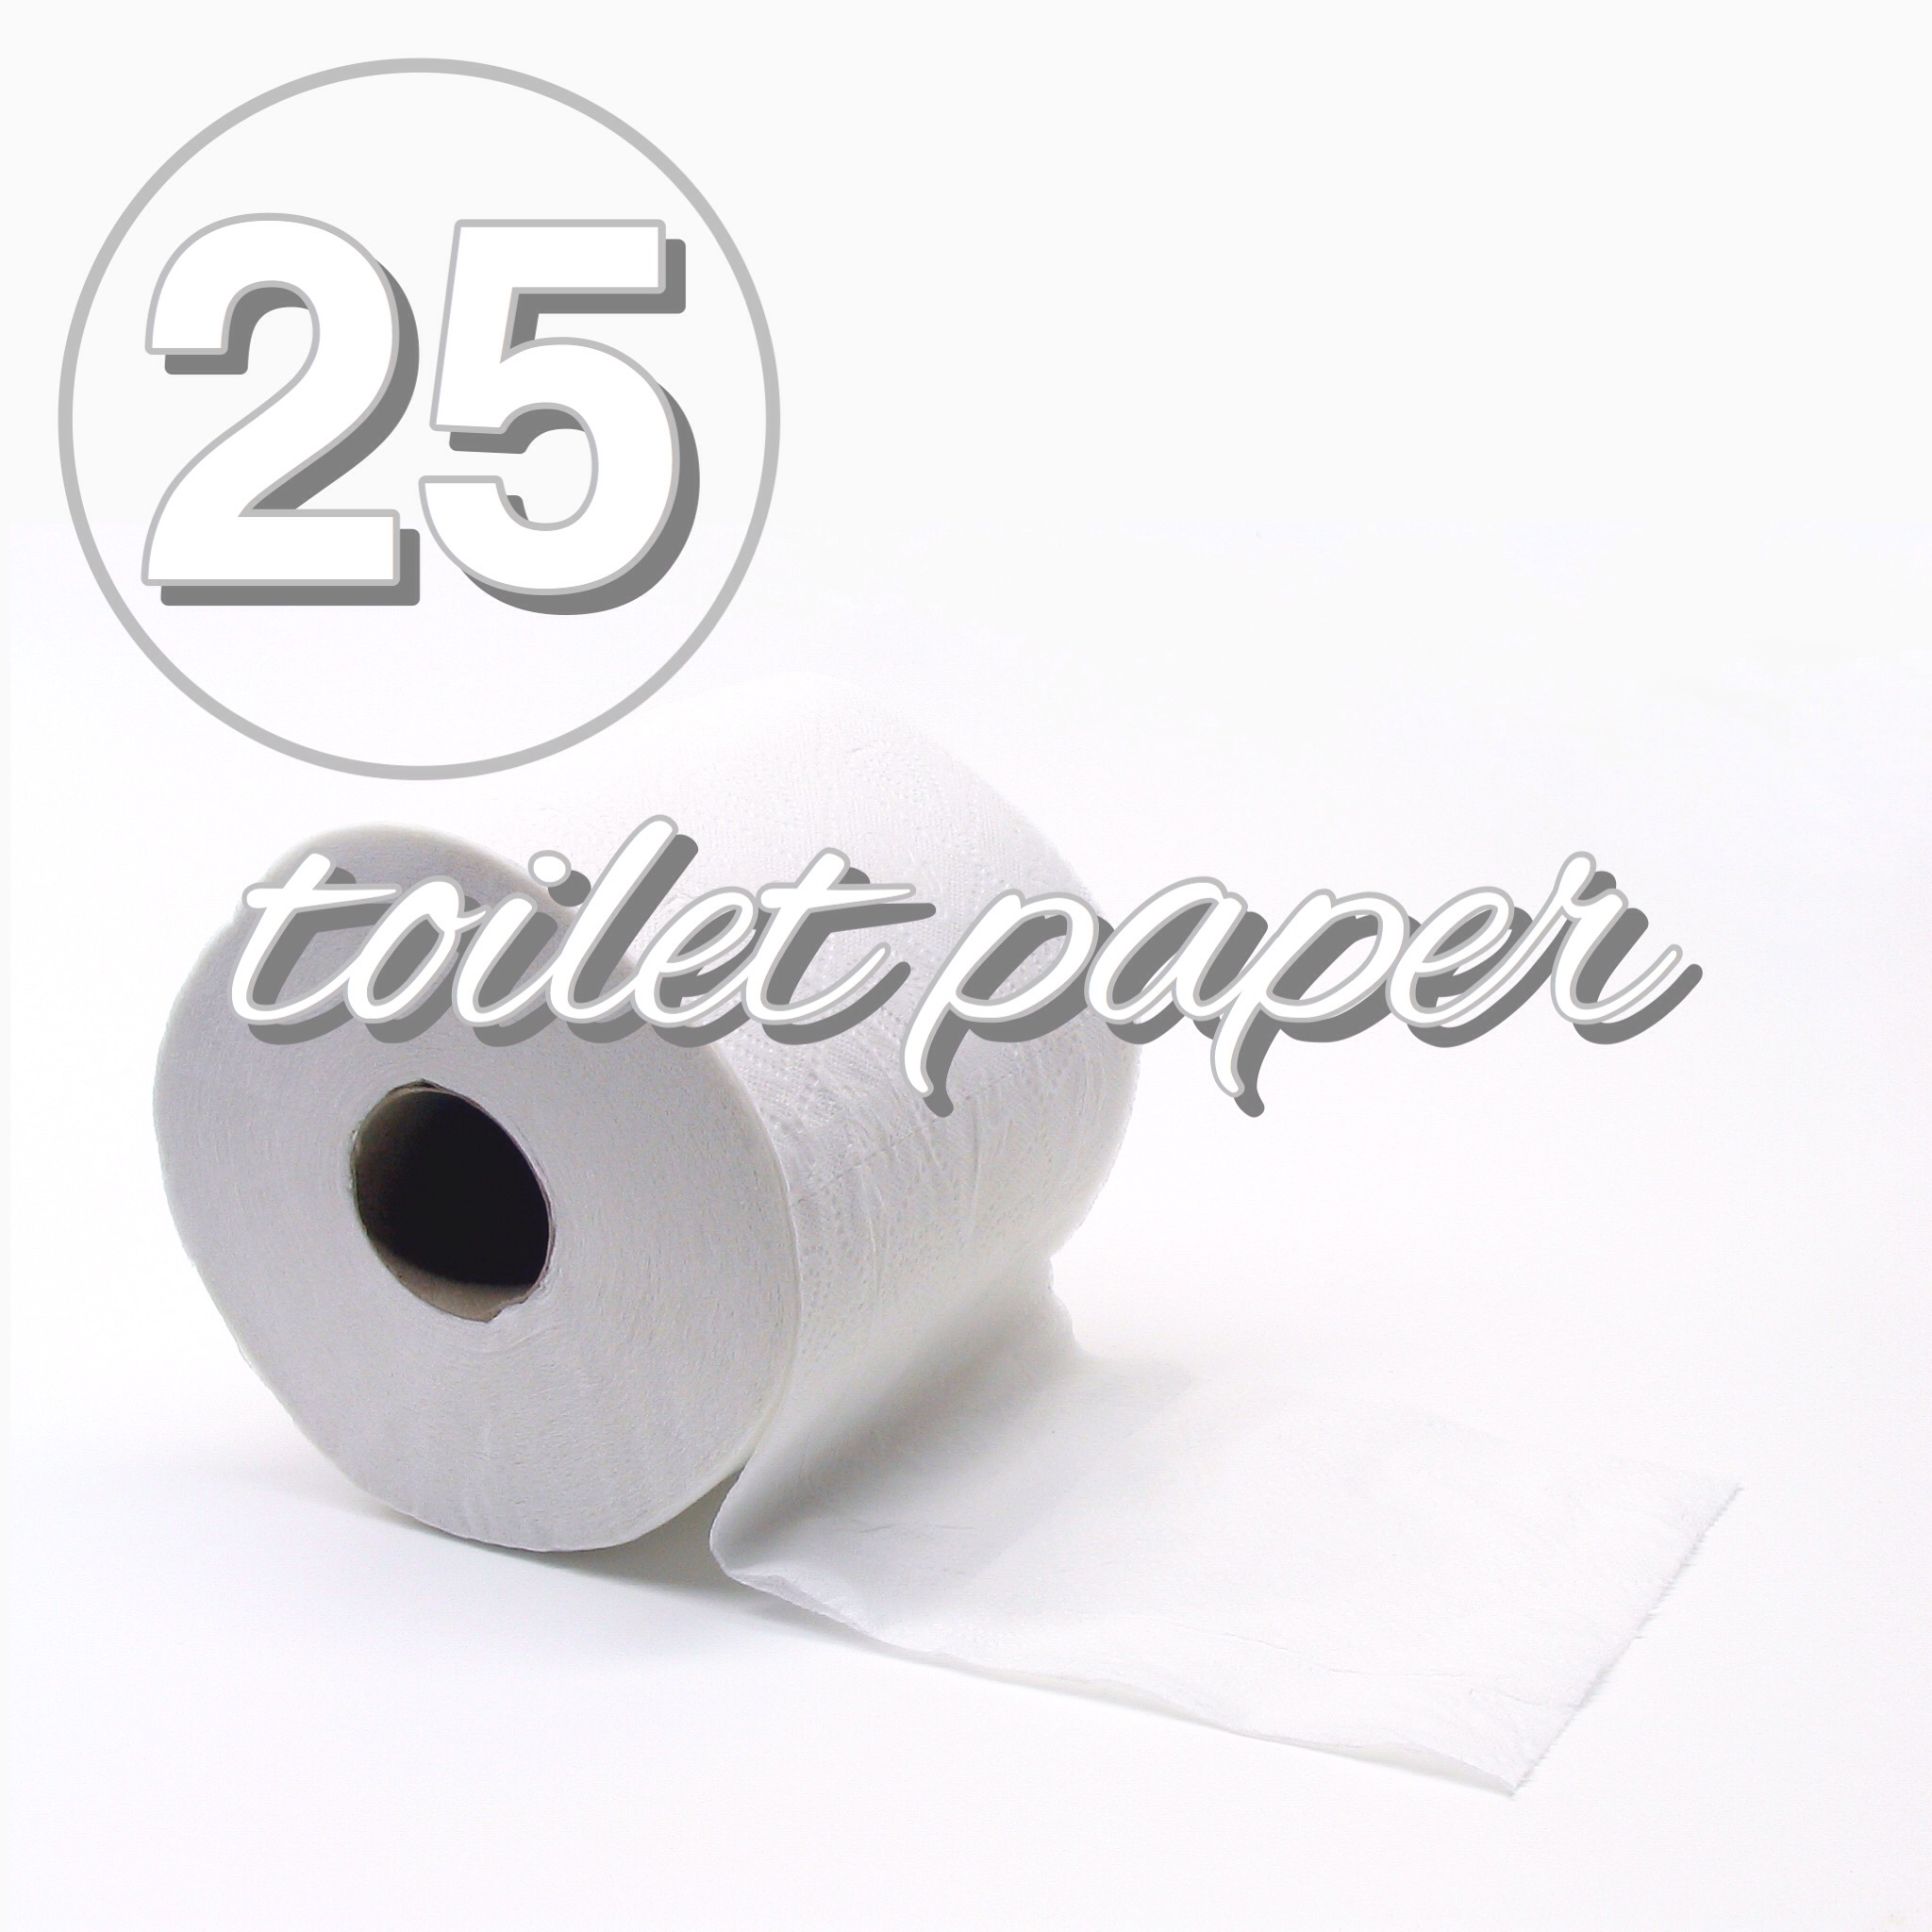 You can be zero waste and still use toilet paper! The toilet paper industry is unsustainable, but not all choices are bad! Check out my list of sustainable options on www.goingzerowaste.com